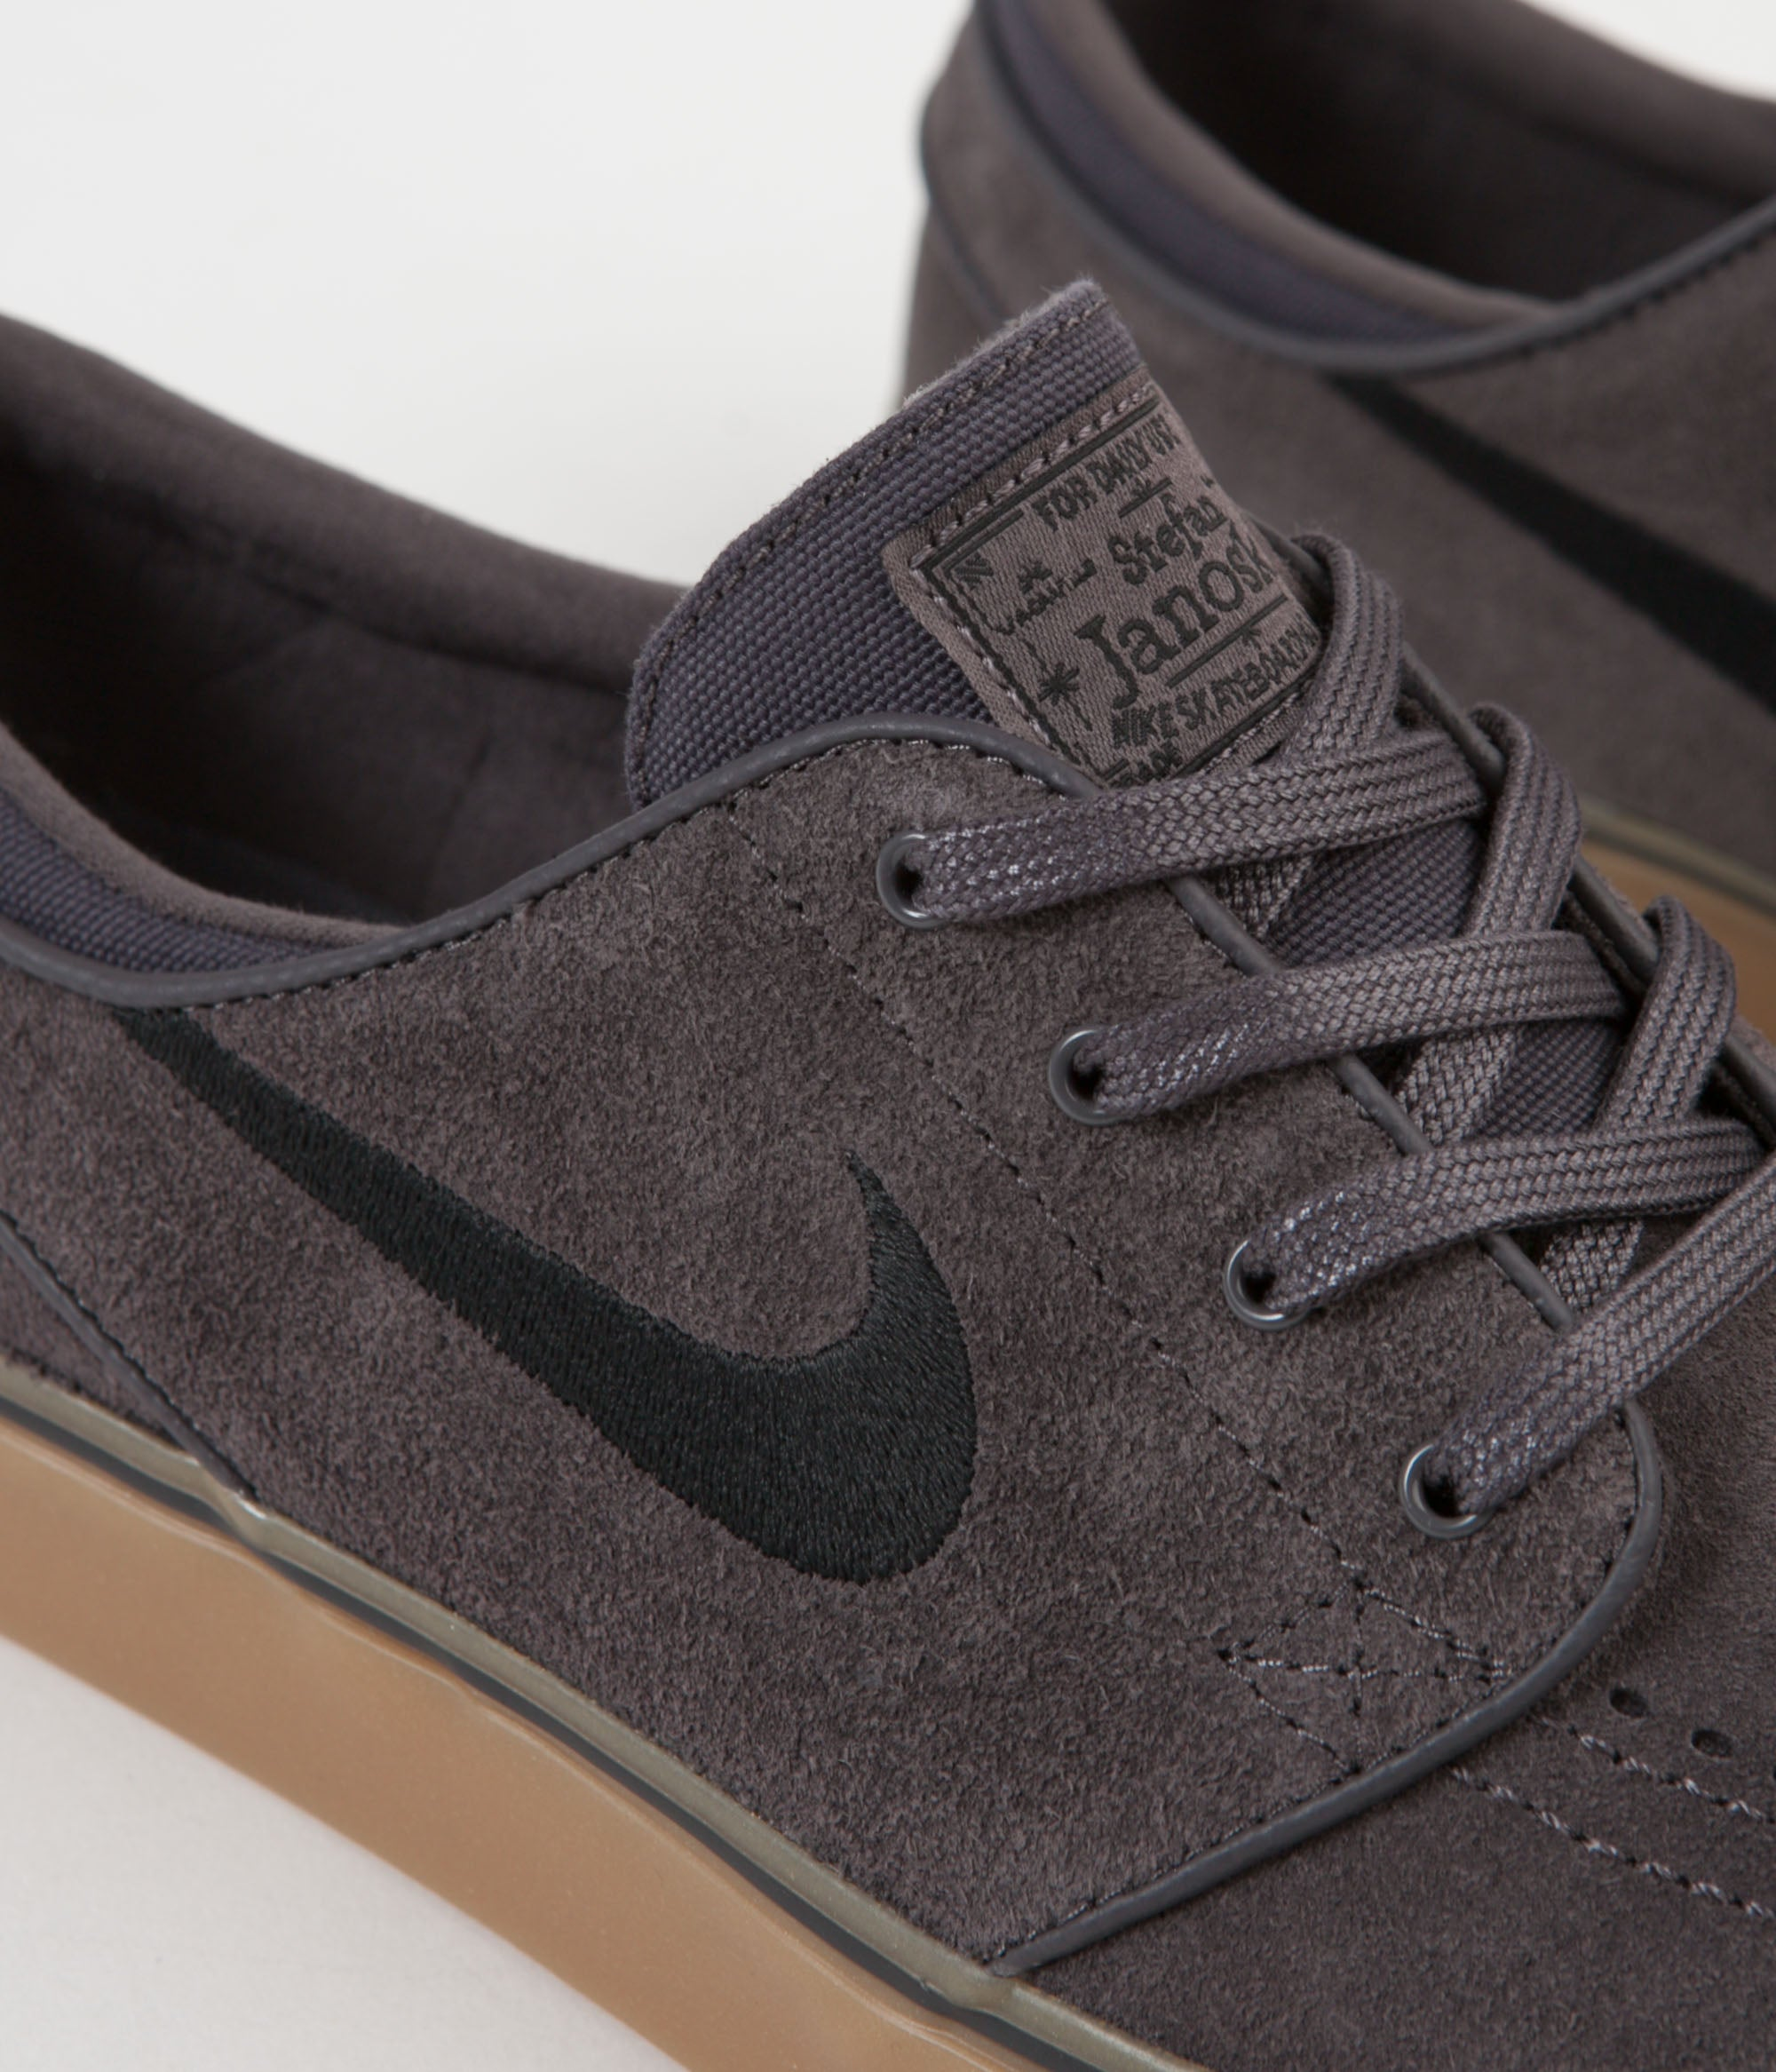 best sneakers 45b35 ff2ce ... Nike SB Stefan Janoski Shoes - Thunder Grey   Black - Gum Light Brown  ...